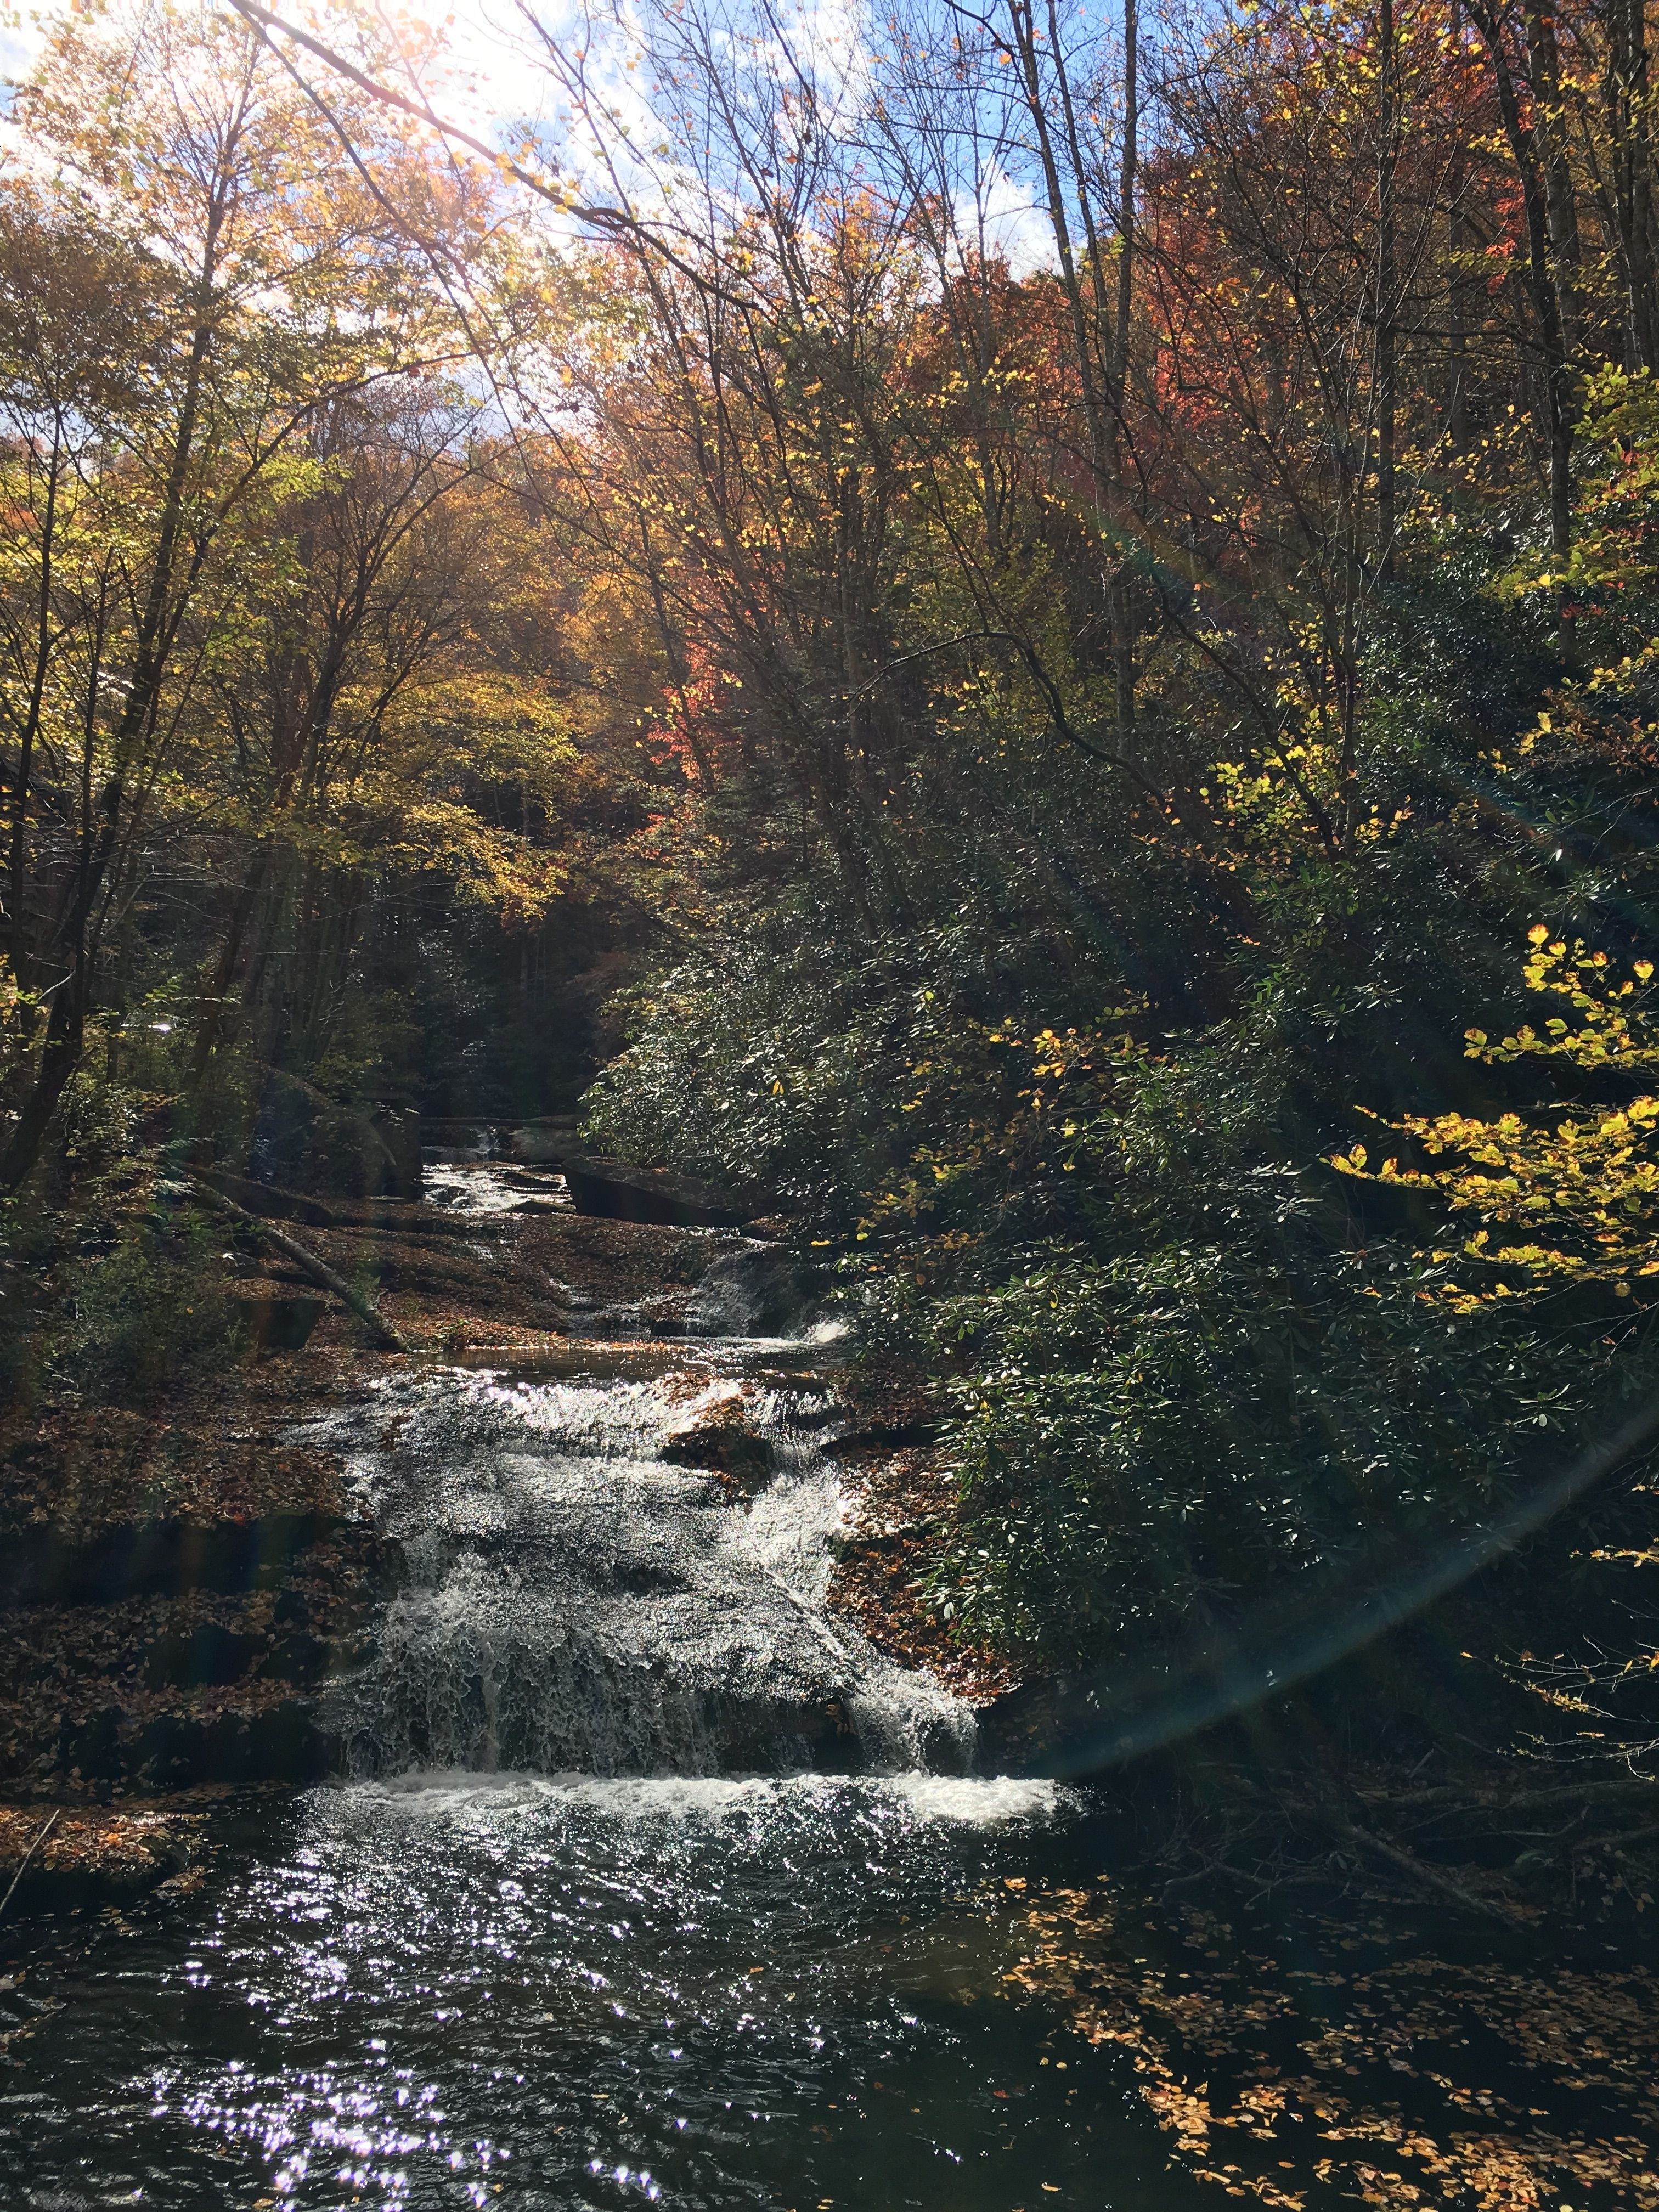 One of my retreats in Boone, NC